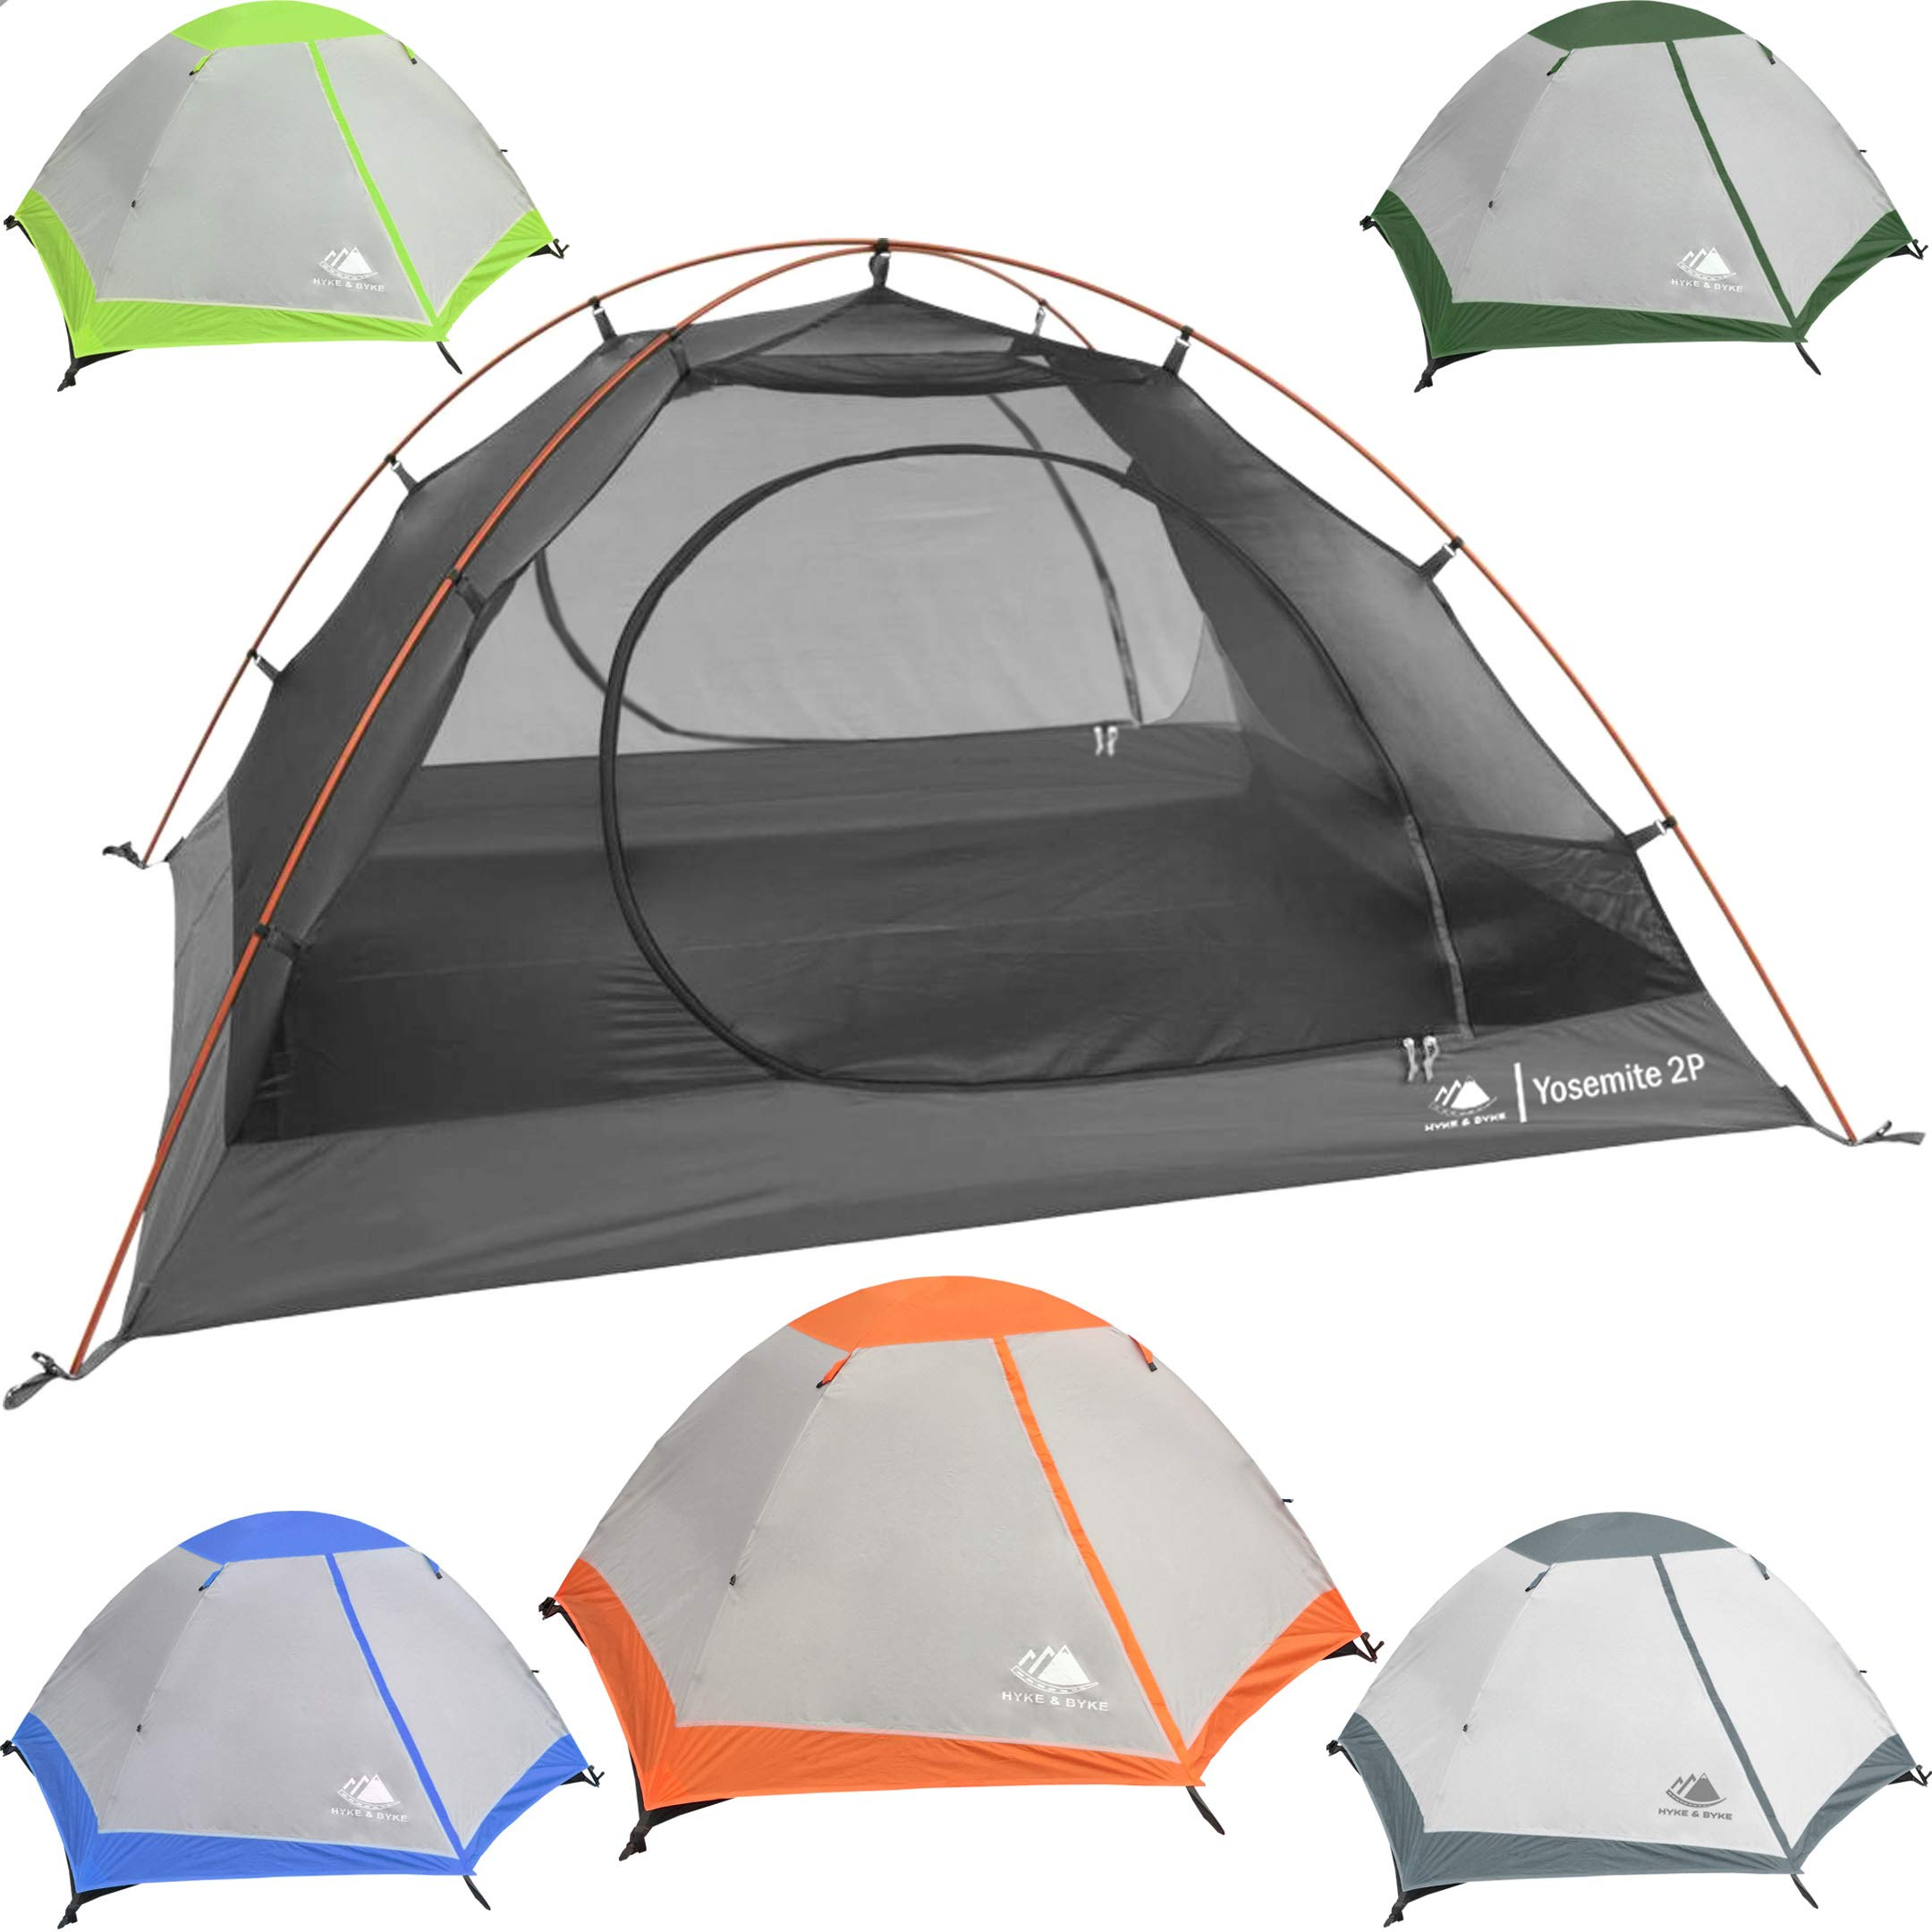 Hyke u0026 Byke Yosemite 1 and 2 Person Backpacking Tents with Footprint - Lightweight Two Door  sc 1 st  Amazon.com & Lightweight Tents for Backpacking: Amazon.com